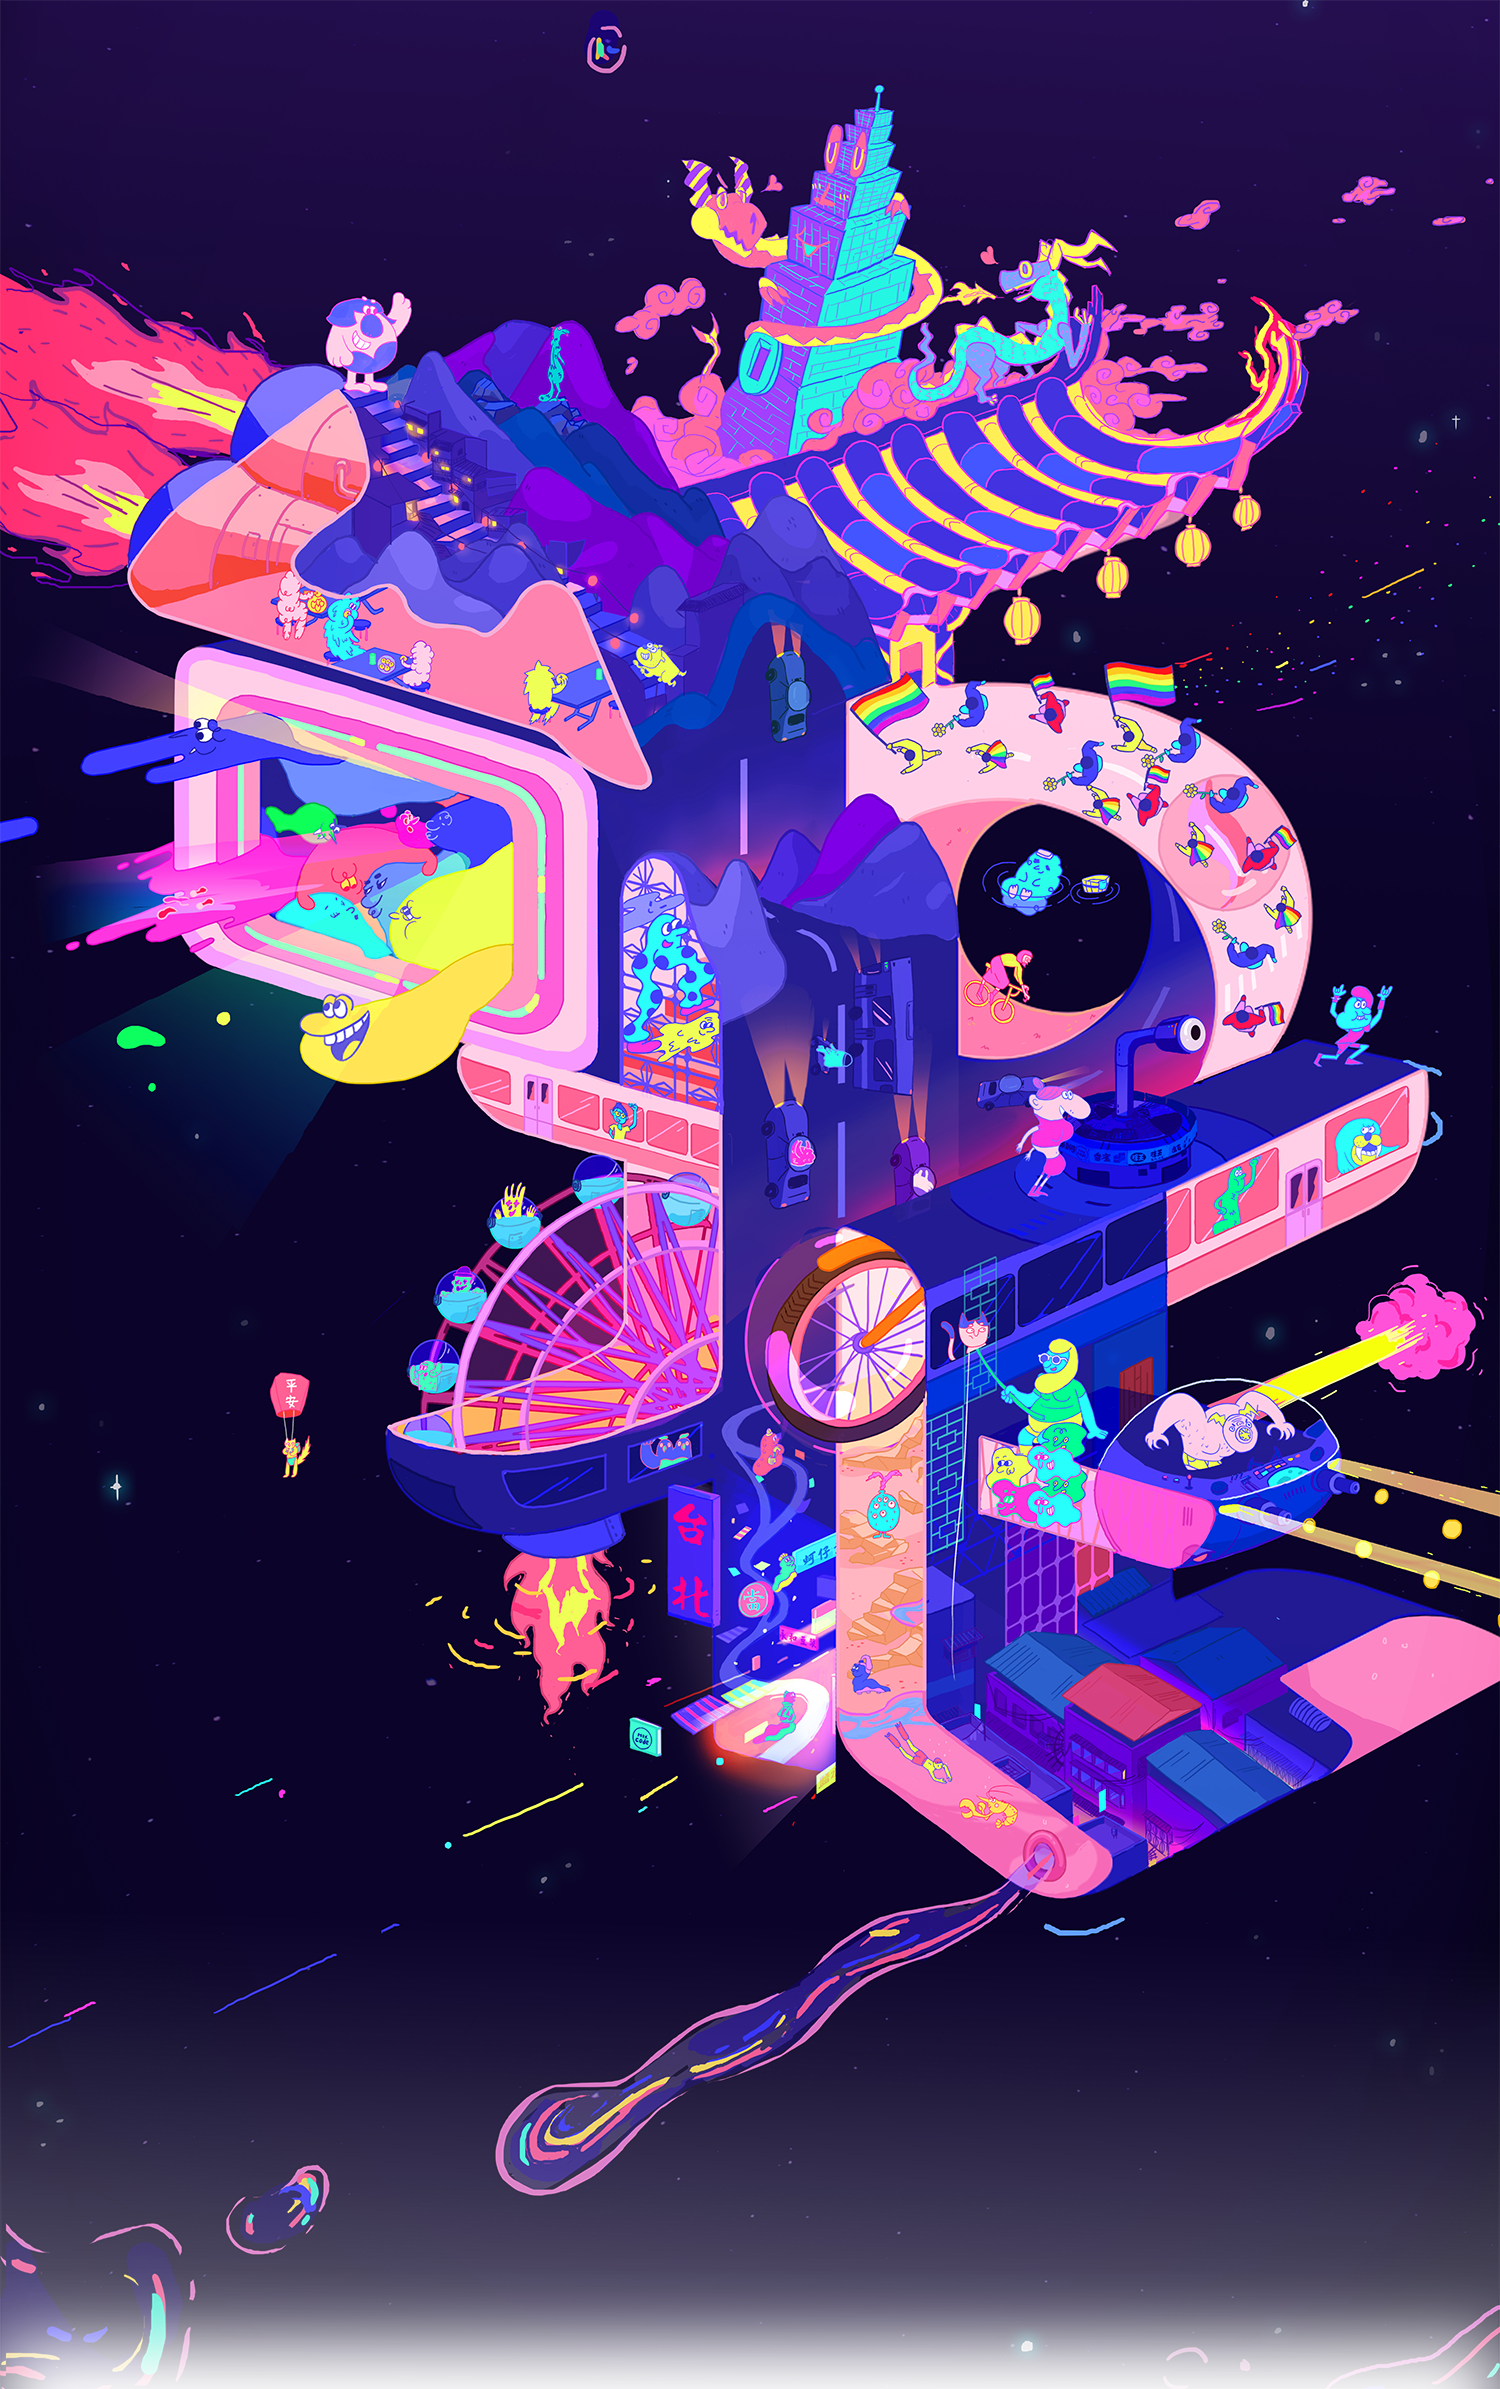 MixCode Graphic Design Festival Dai Ba Bing Biang Kiò 台北乒乓叫 - Graphic design